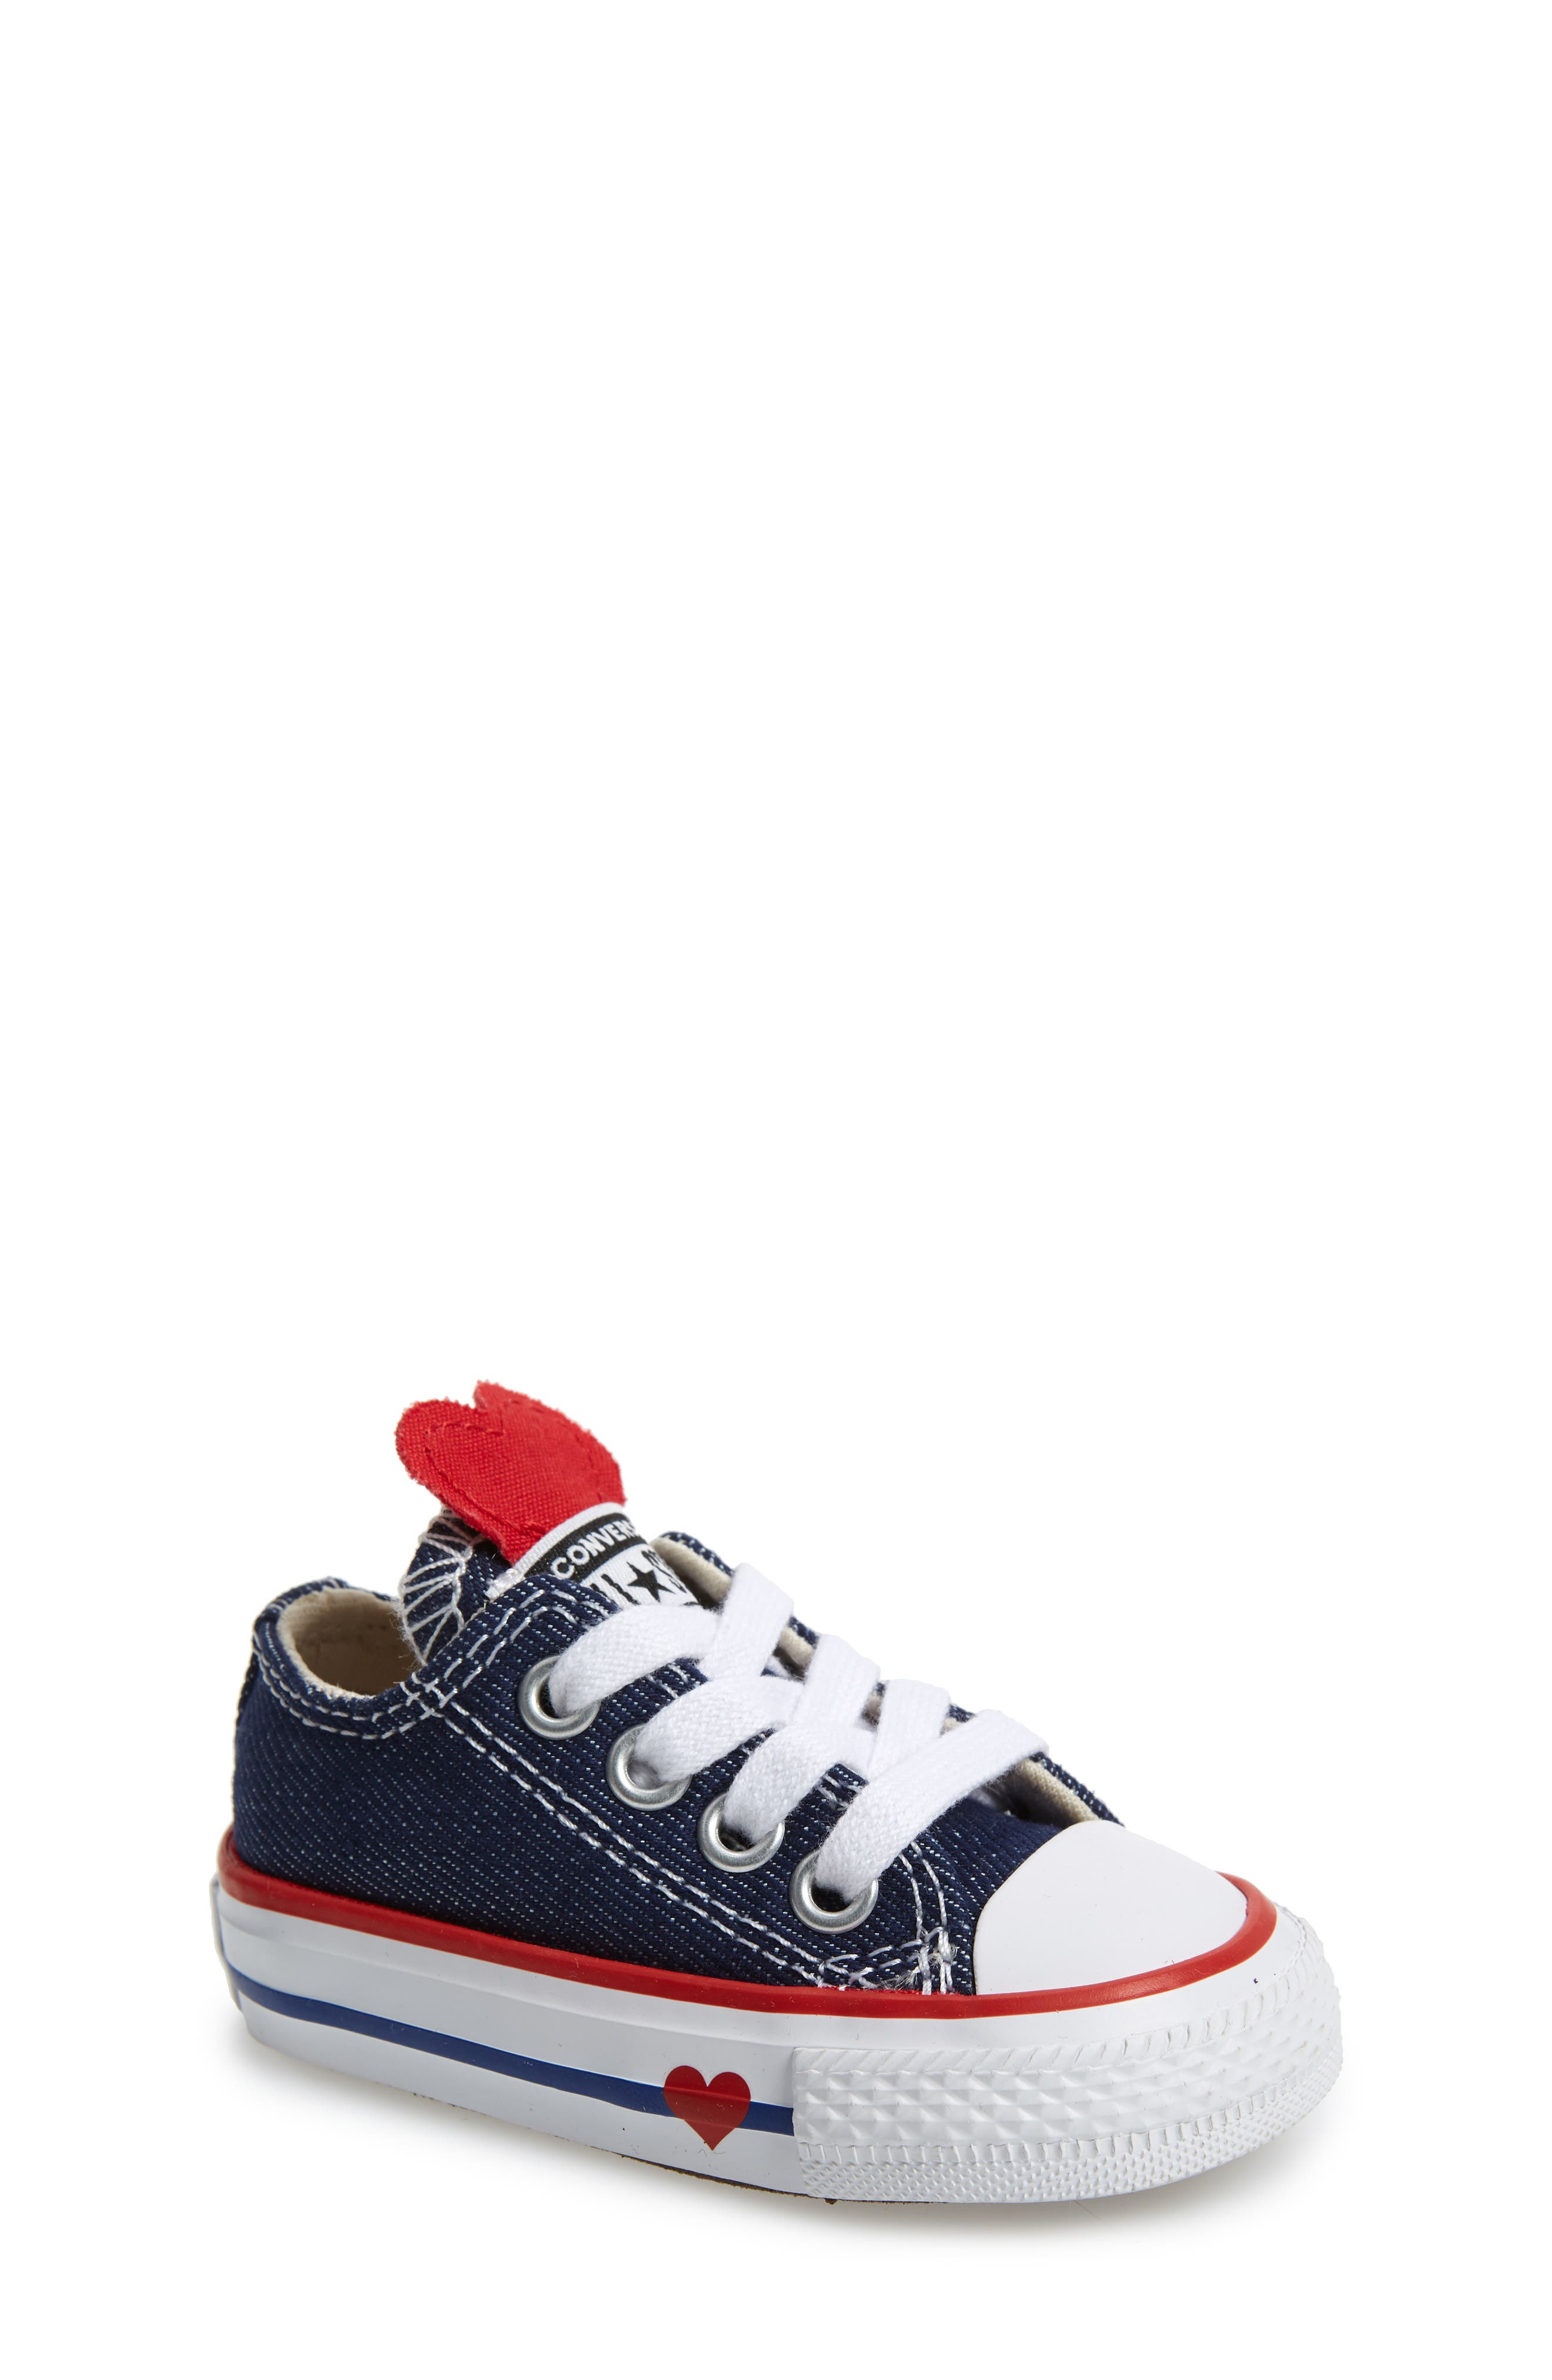 CONVERSE Chuck Taylor<sup>®</sup> All Star<sup>®</sup> Ox Low Top Sneaker, Main, color, 410